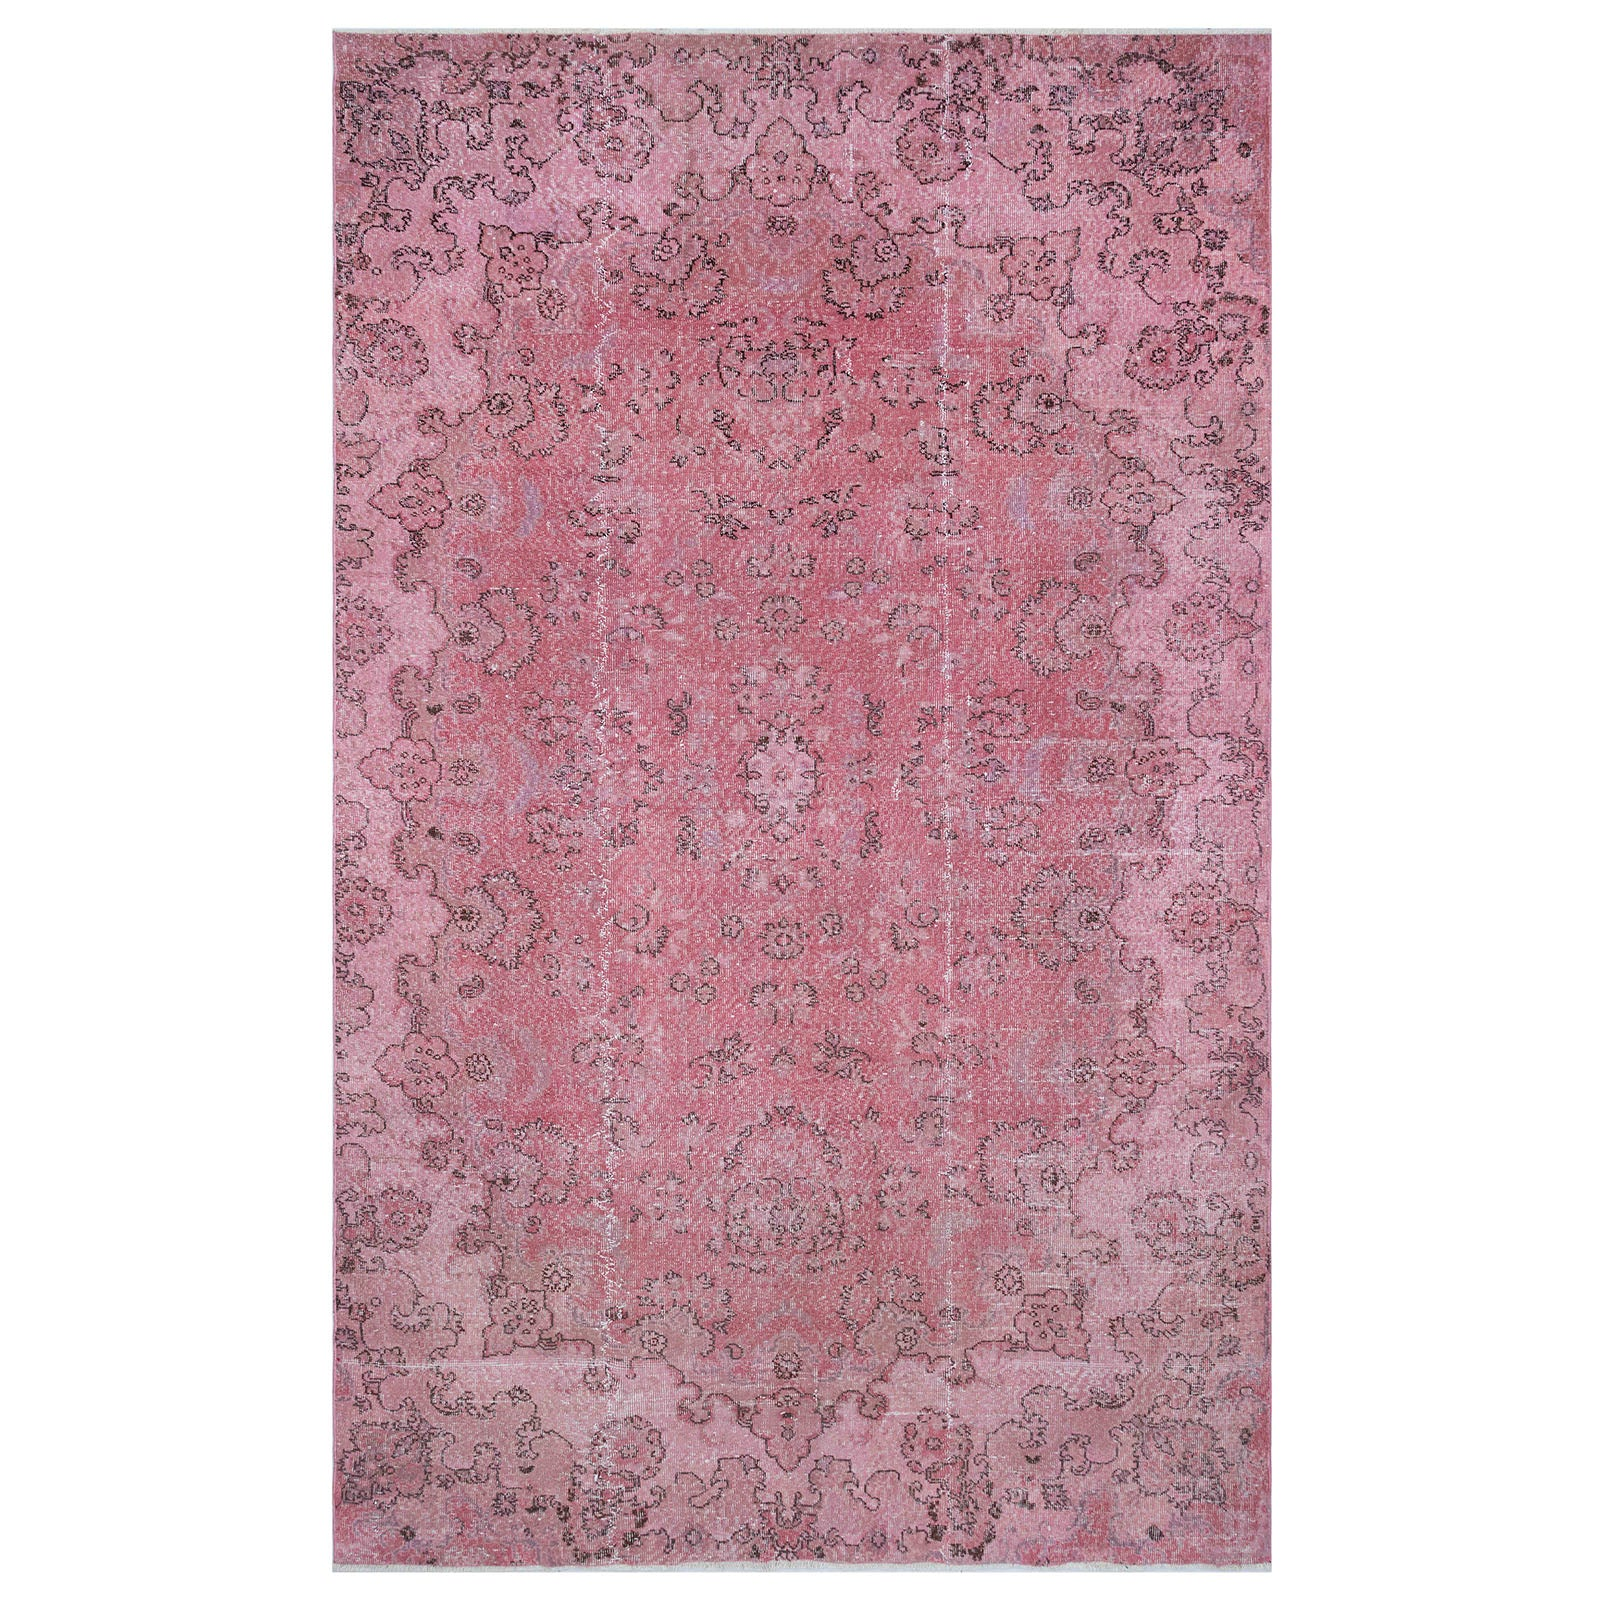 Hali 196X320  CM Bursa Handmade over dyed rug  1583